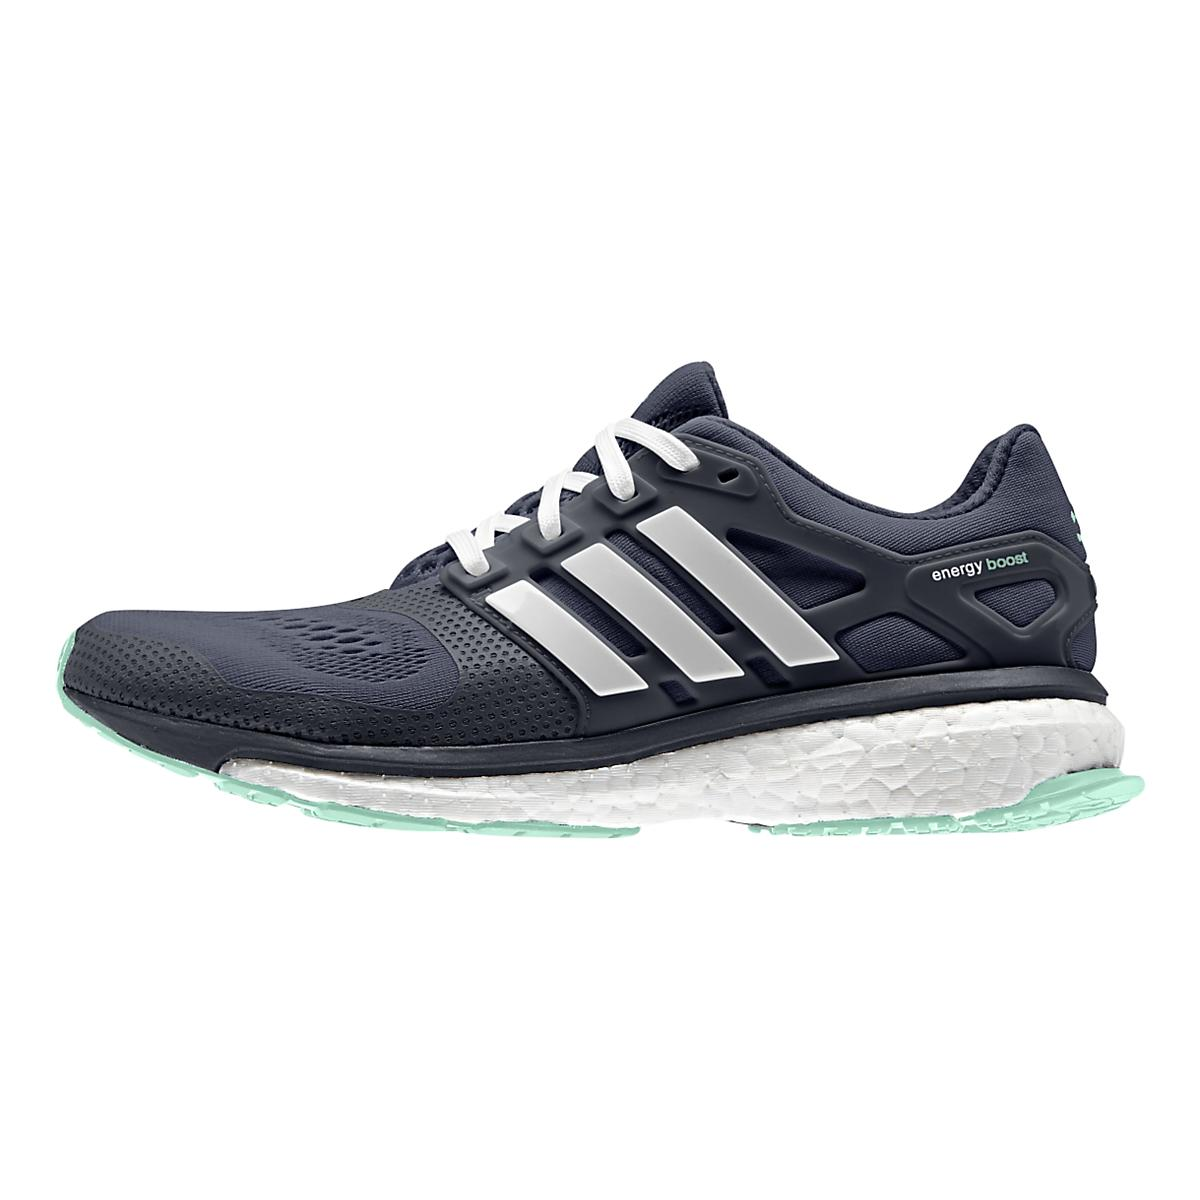 Adidas Boost Shoes Womens